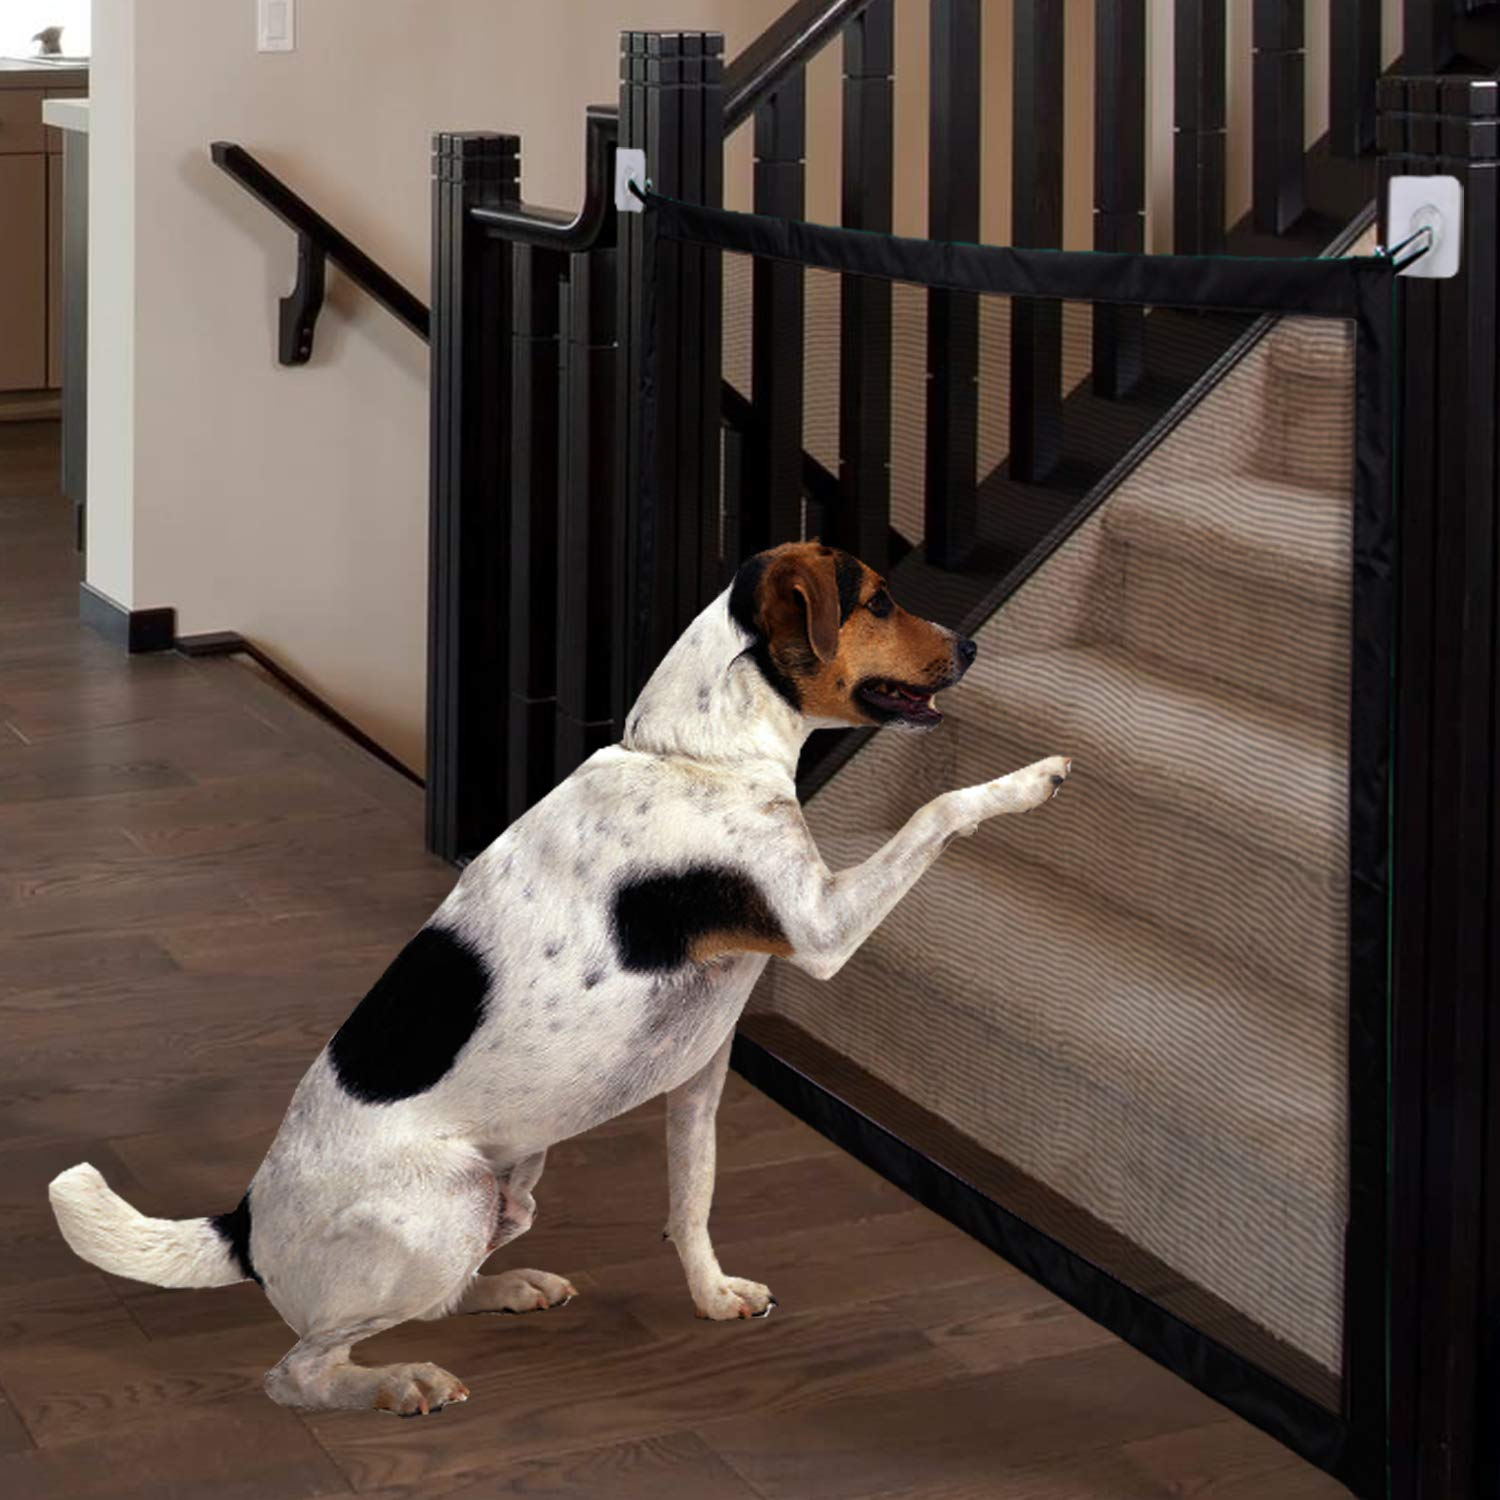 MOO&NOO Magic Gate Pet Safety Gate Portable Folding Guard Install Anywhere for Dog Cat Baby, Fits Spaces Between 32'' to 39'' Wide